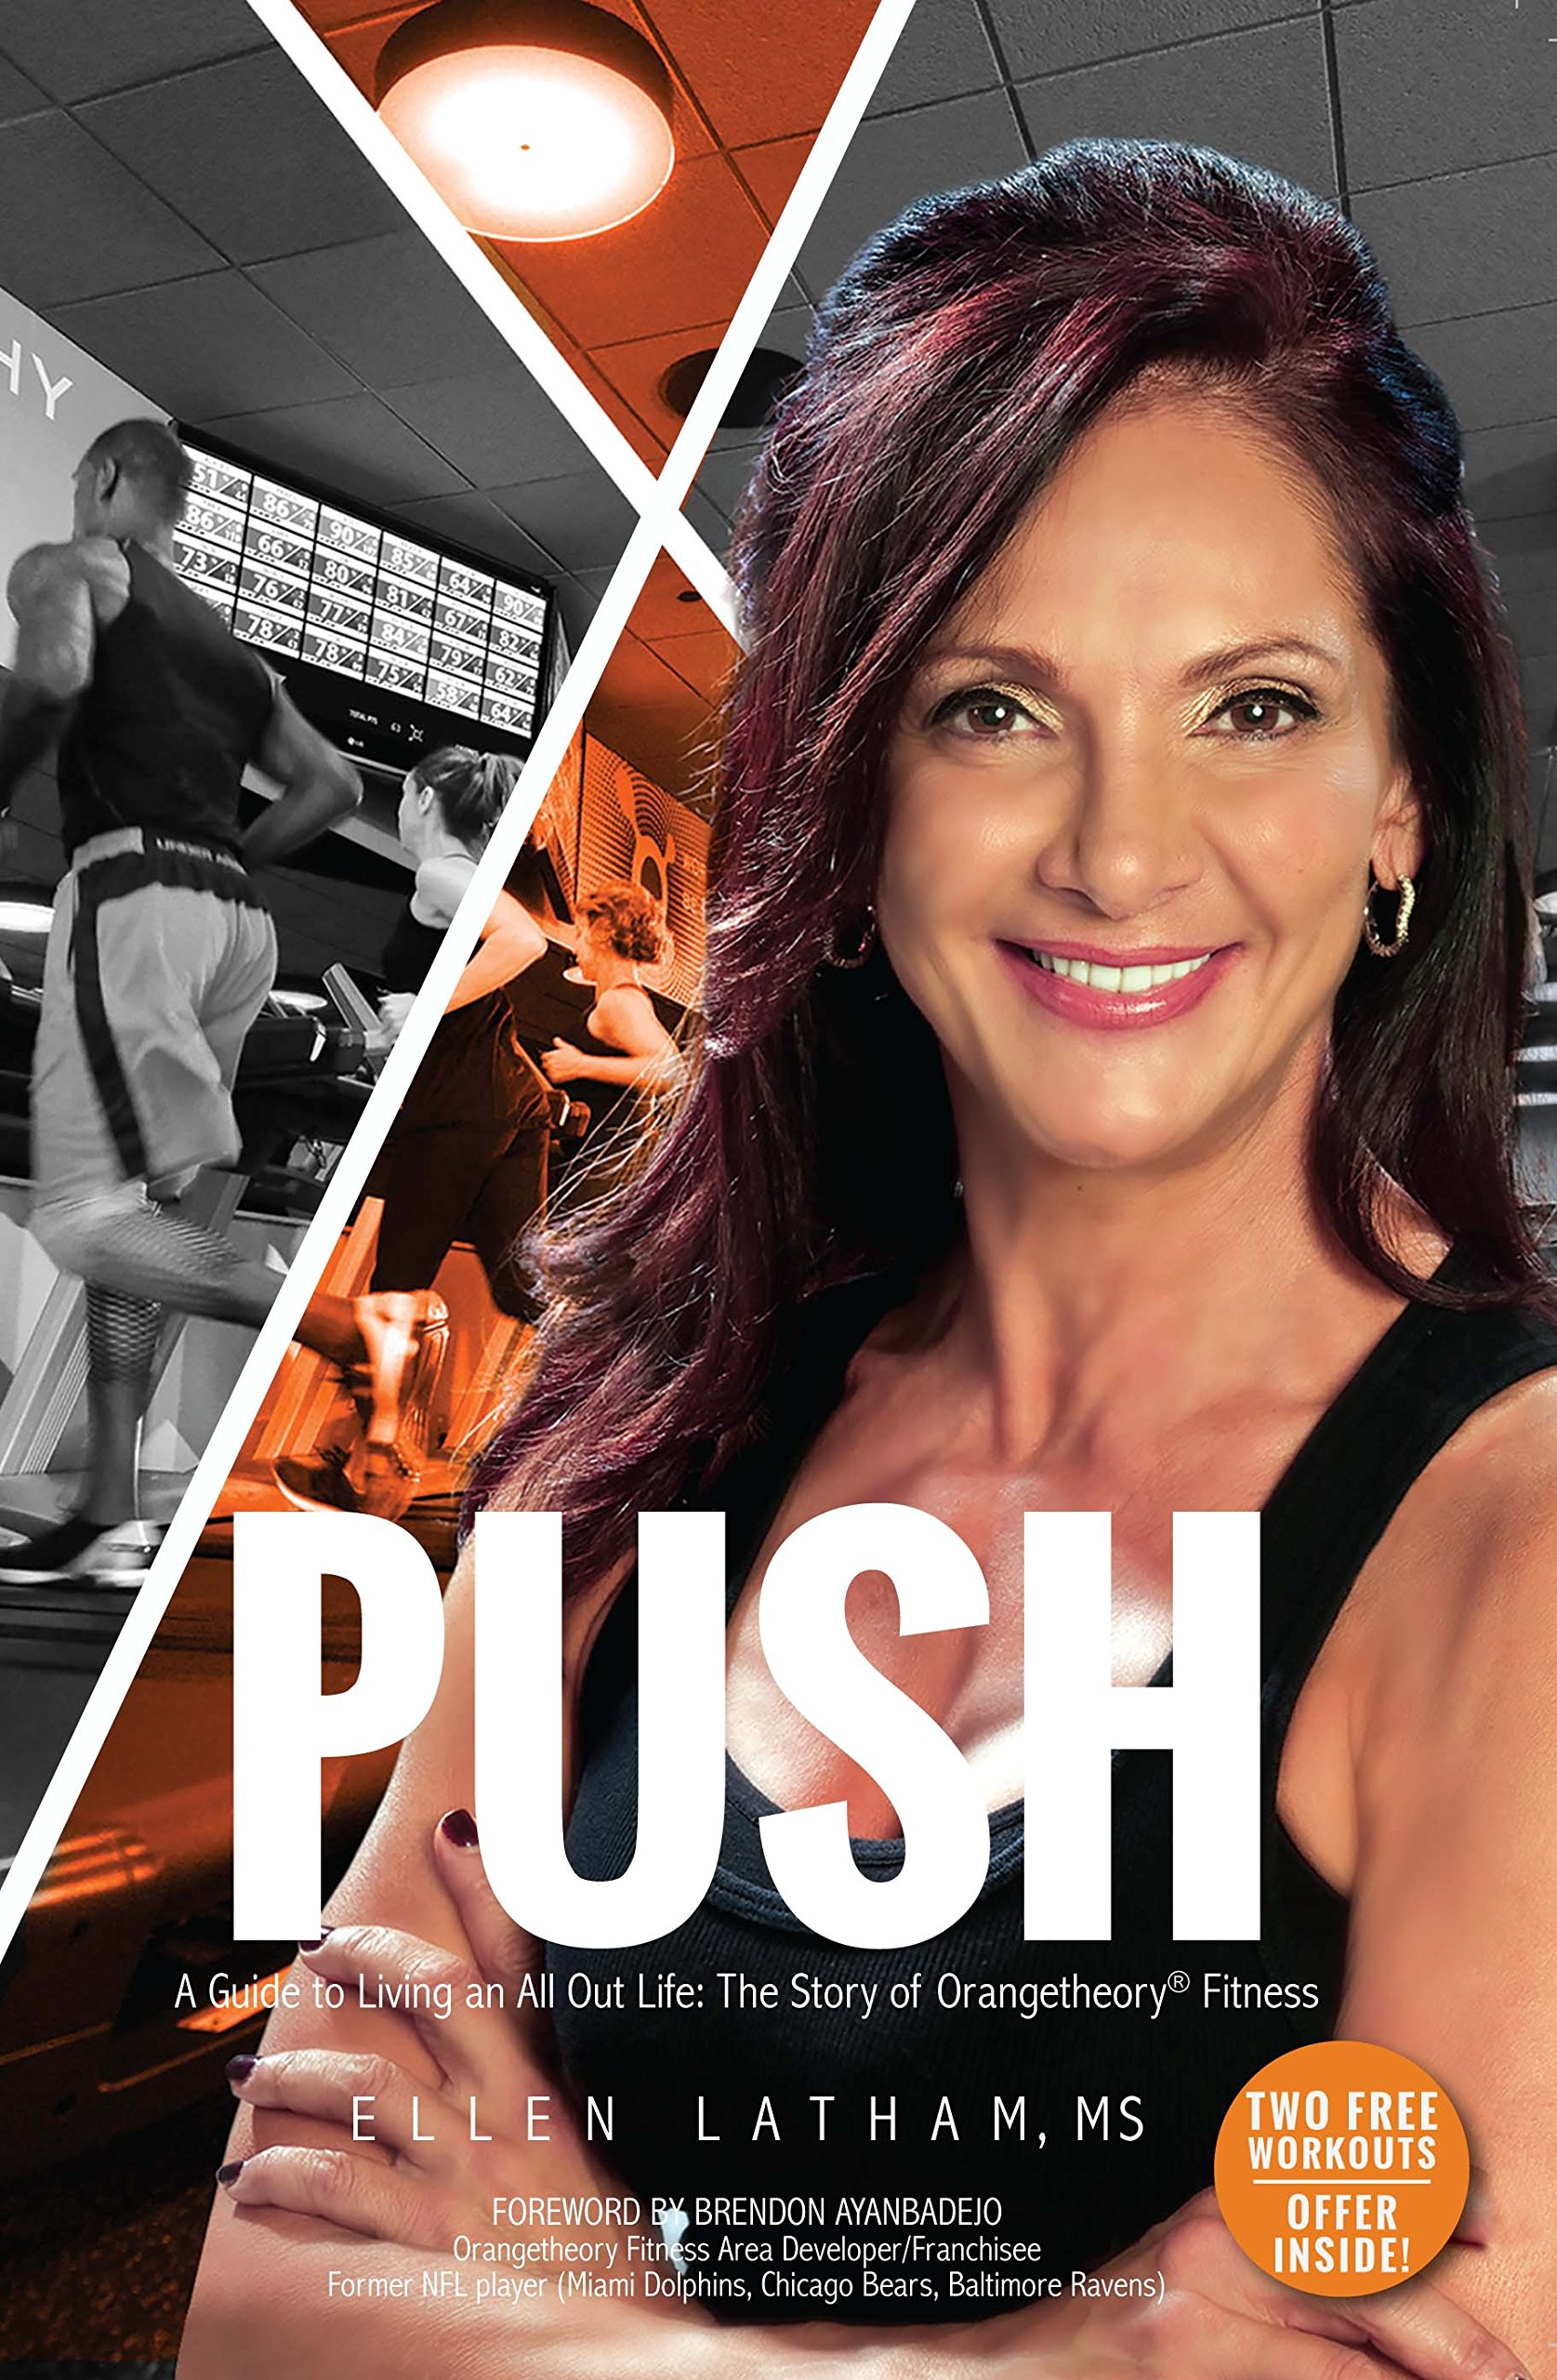 Download PUSH - A Guide to Living an All Out Life: The Story of Orangetheory Fitness ebook